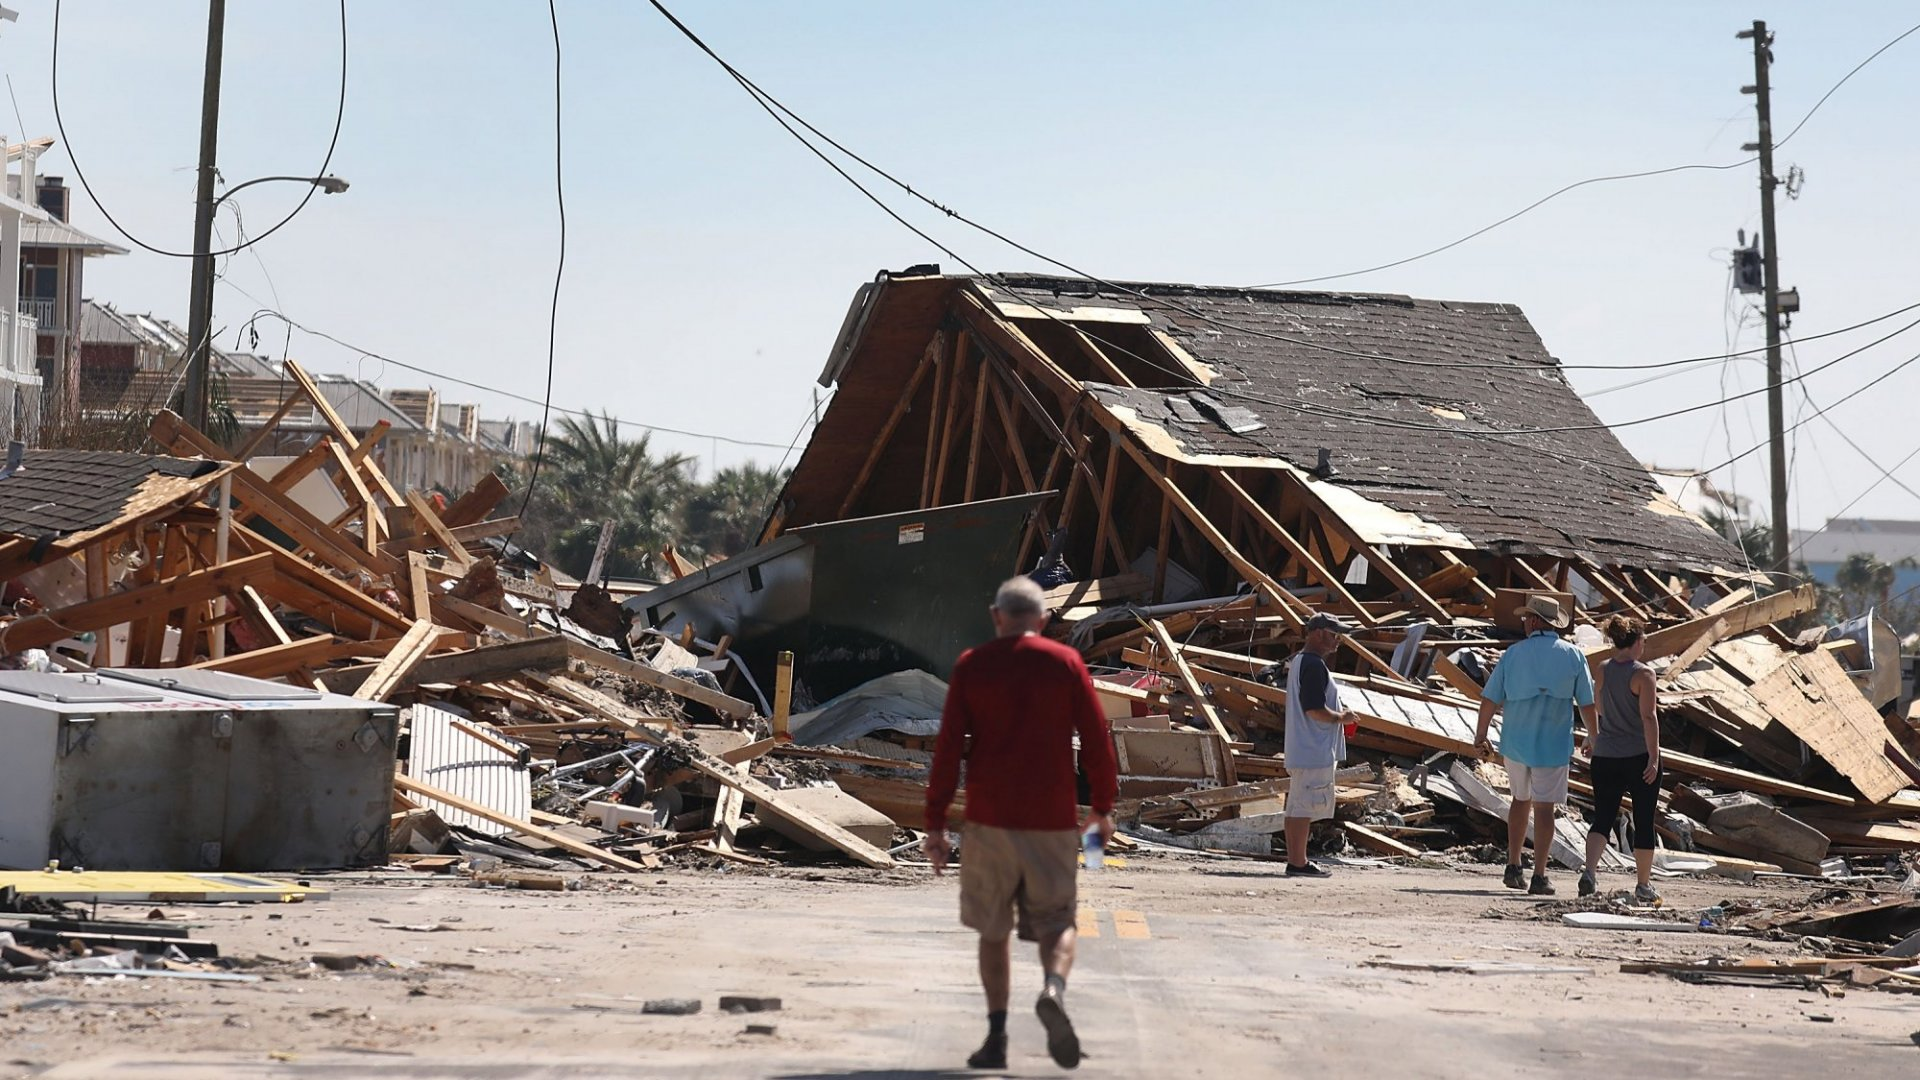 Natural Disasters Can Wreak Havoc on Your Credit. Here's How to Respond